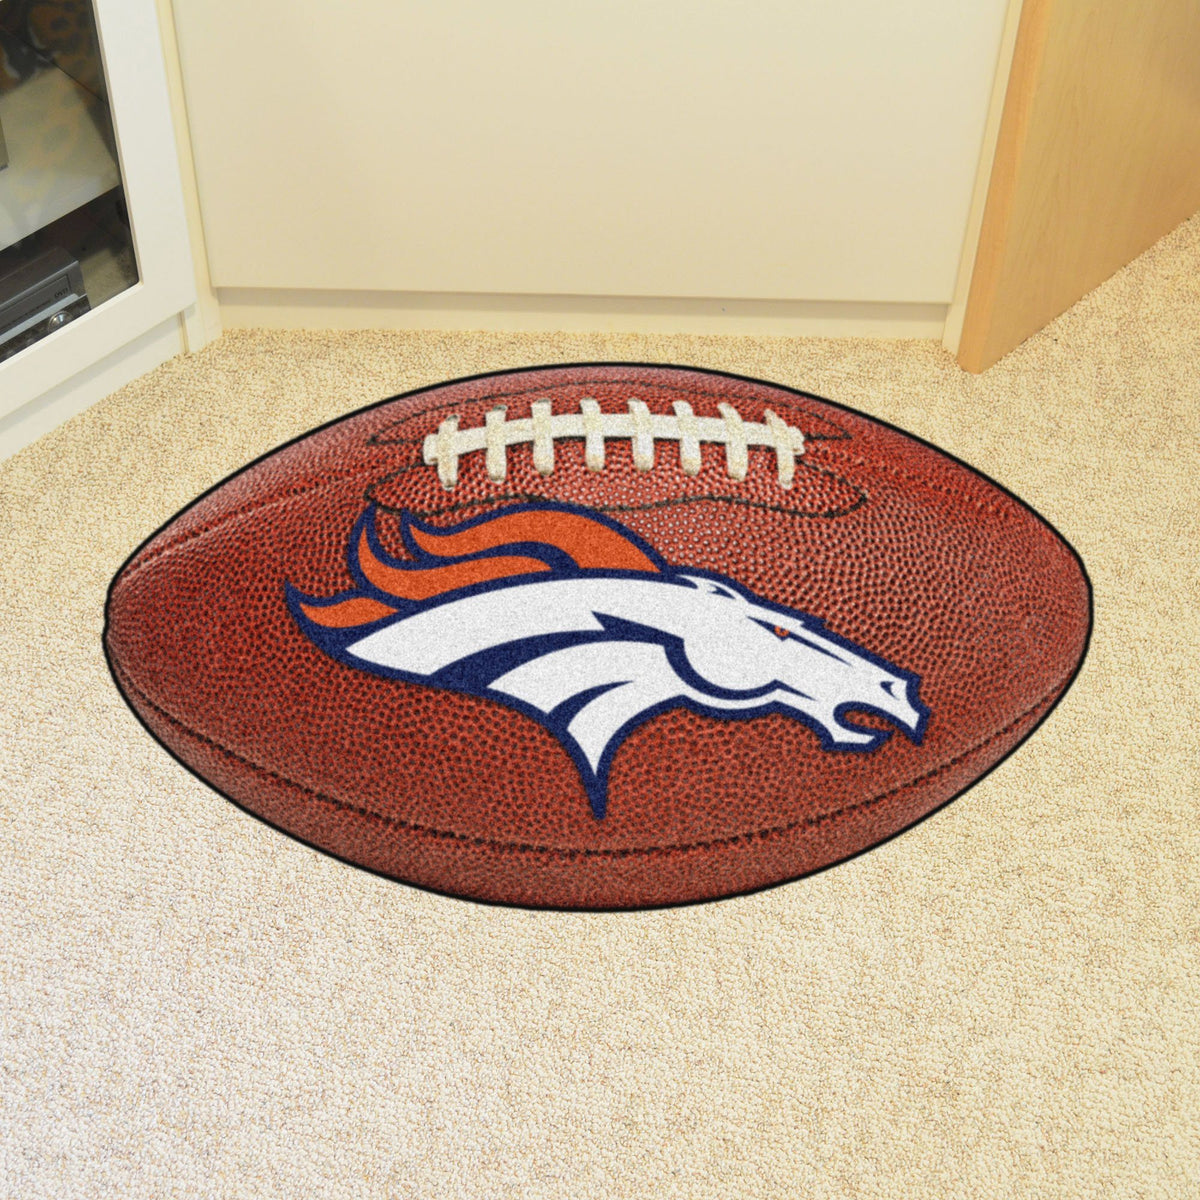 NFL - Football Mat NFL Mats, Custom Shape Rugs, Football Mat, NFL, Home Fan Mats Denver Broncos